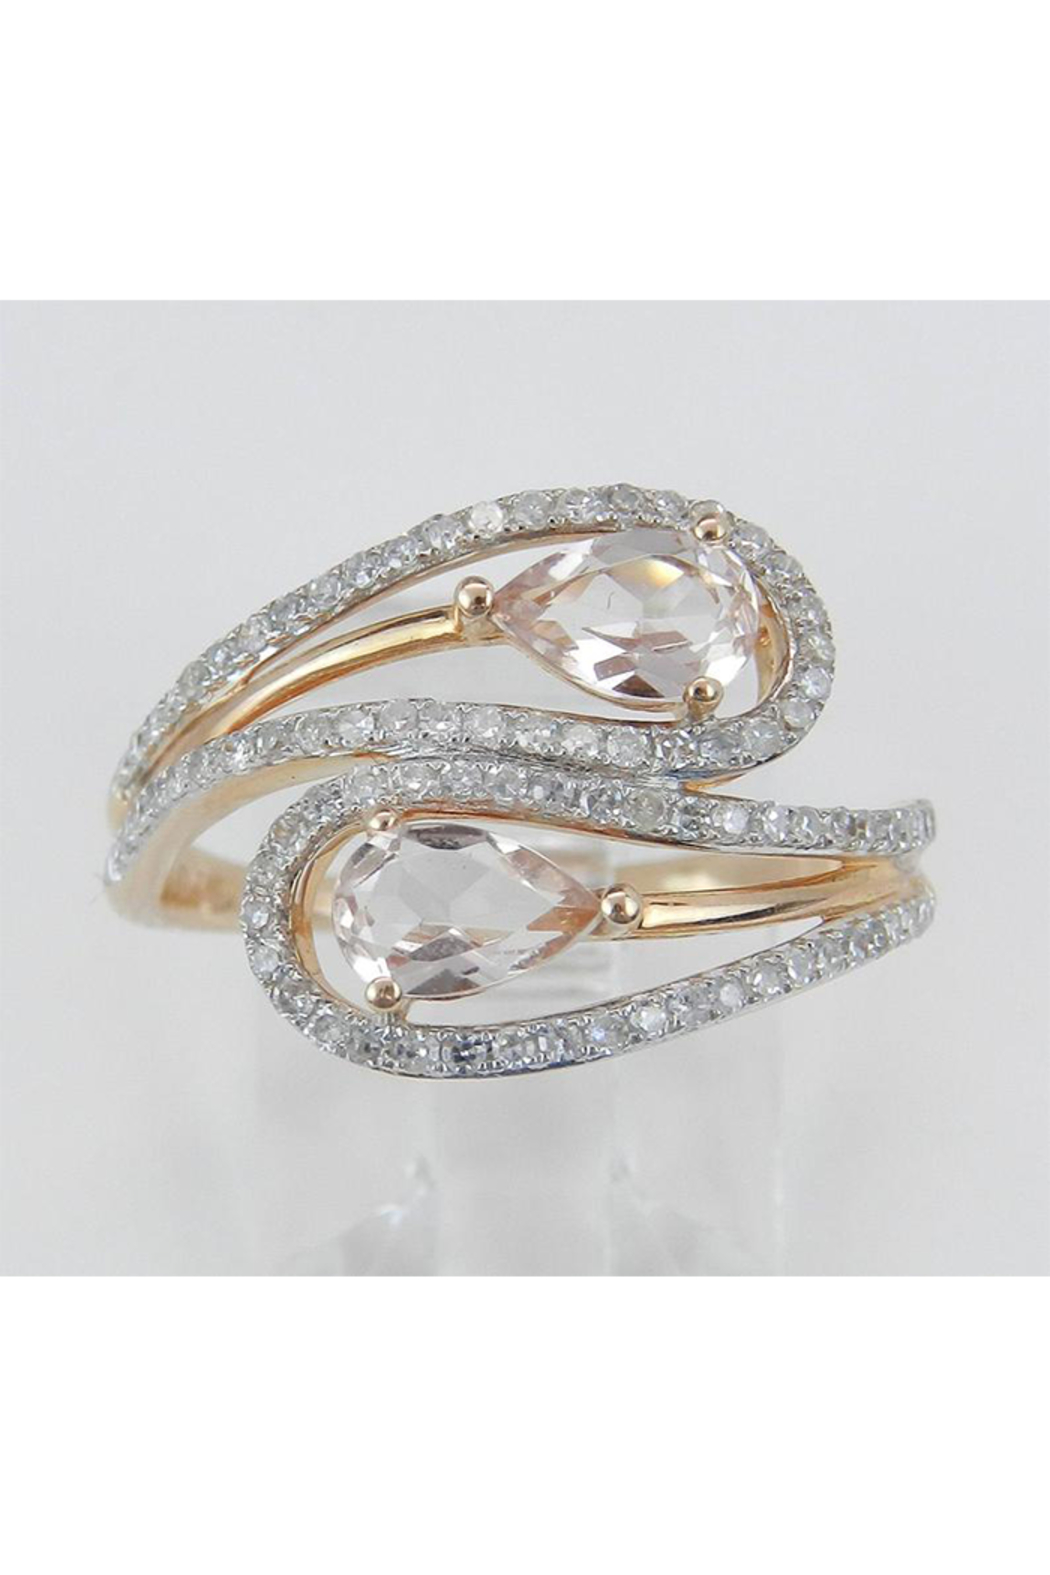 Margolin & Co 14K Rose Gold Diamond and Morganite Cocktail Bypass Ring Size 7.25 Beryl Gem FREE Sizing - Front Full Image